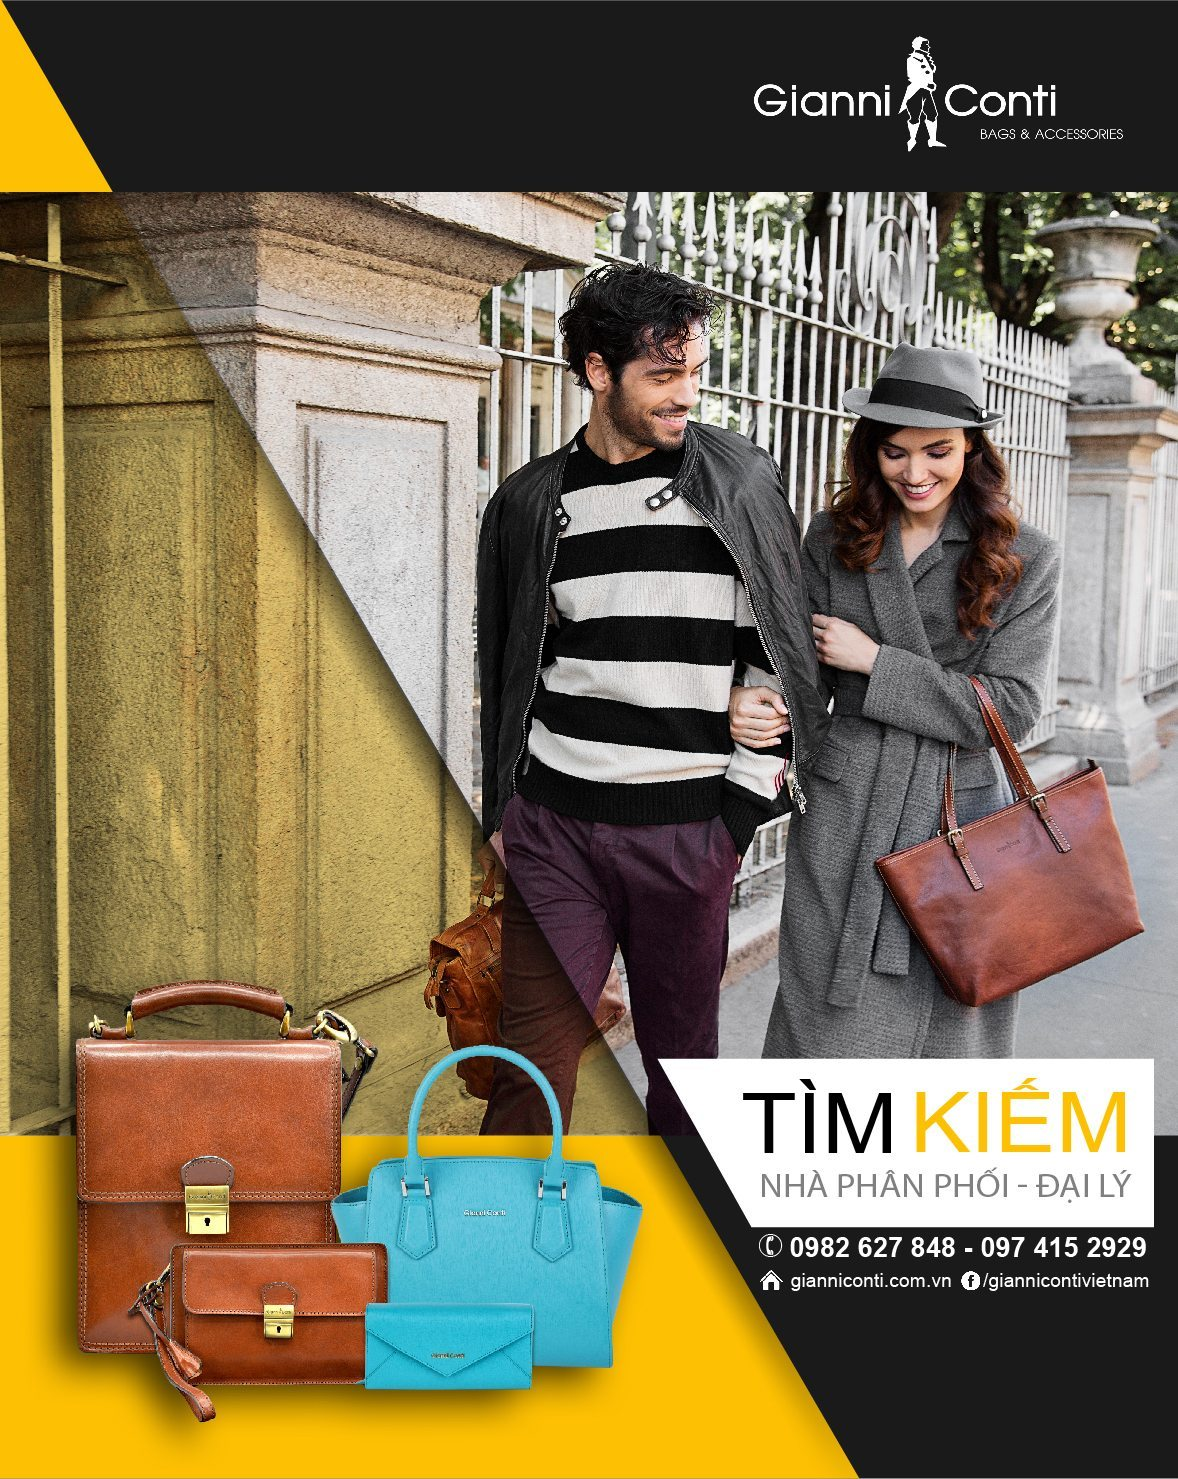 Gianni Conti Vietnam is now looking for Distributors!